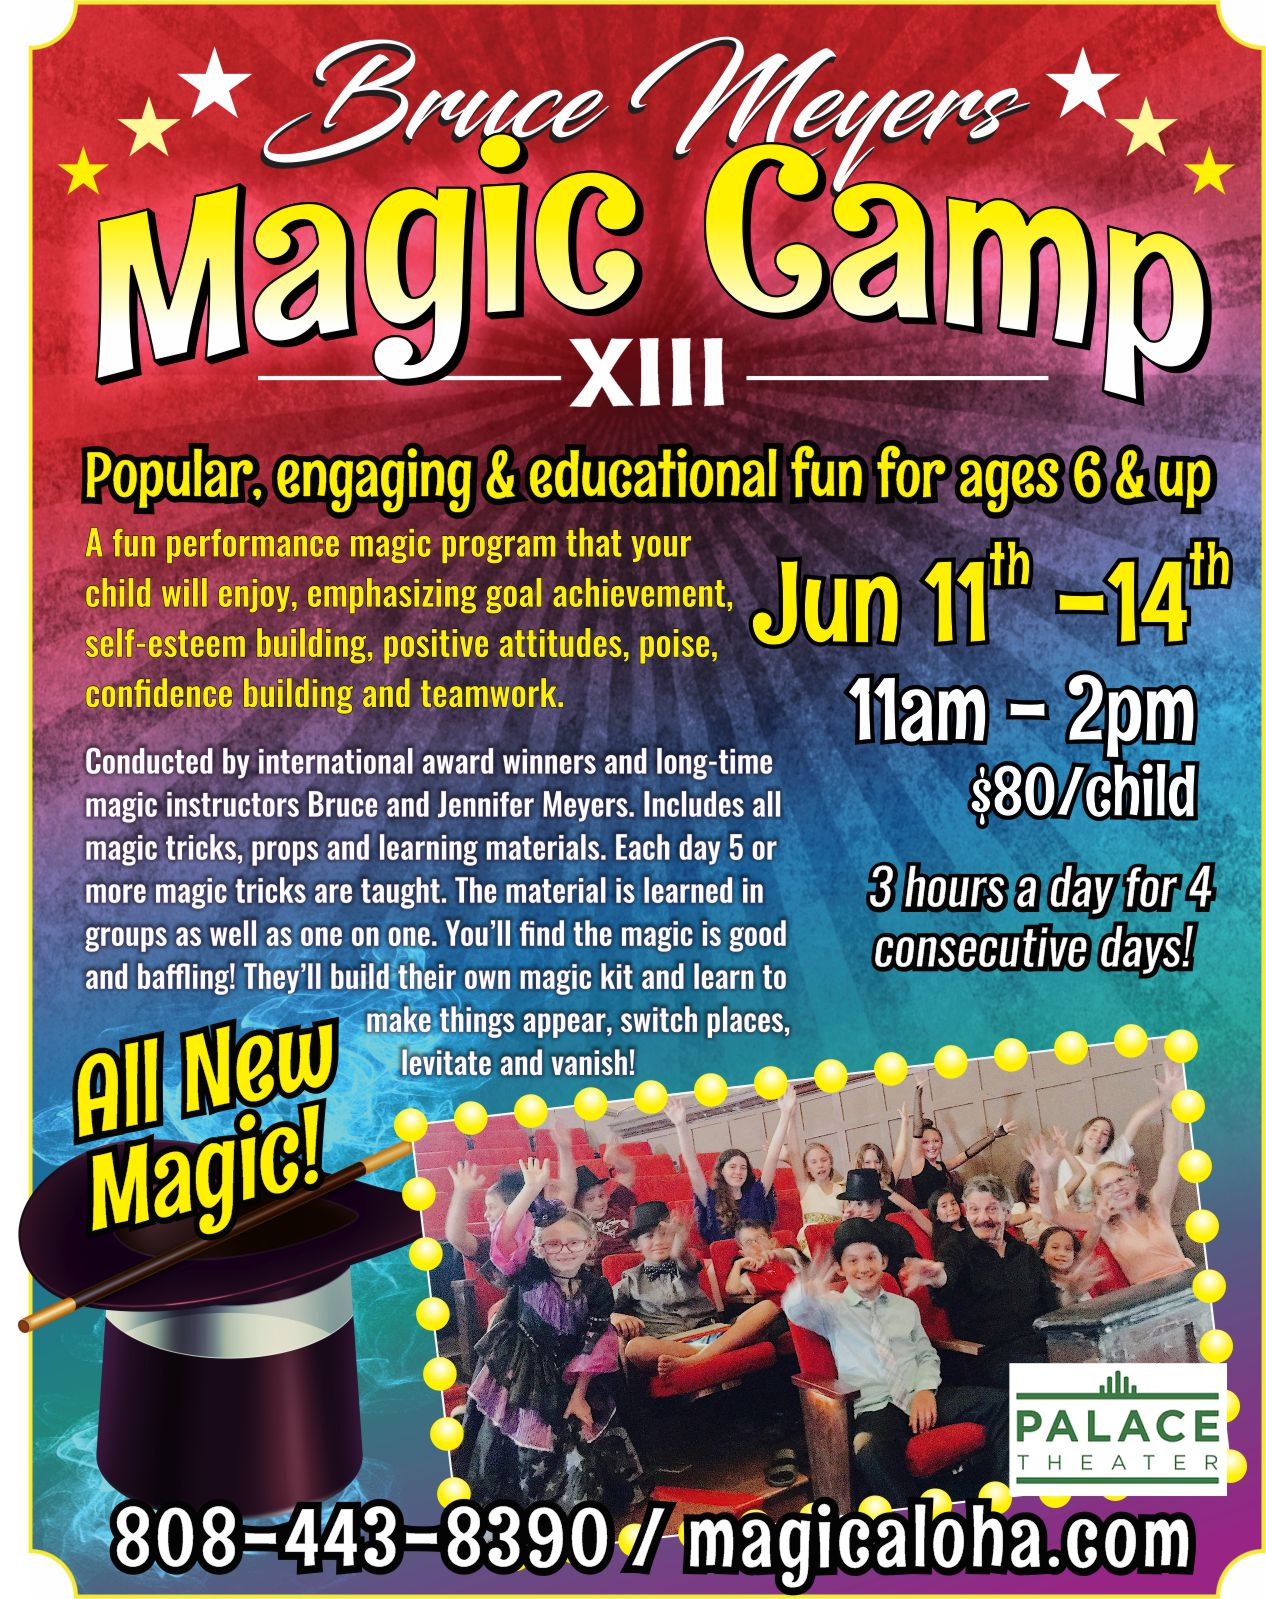 web res Bruce Meyers Magic Camp XIII